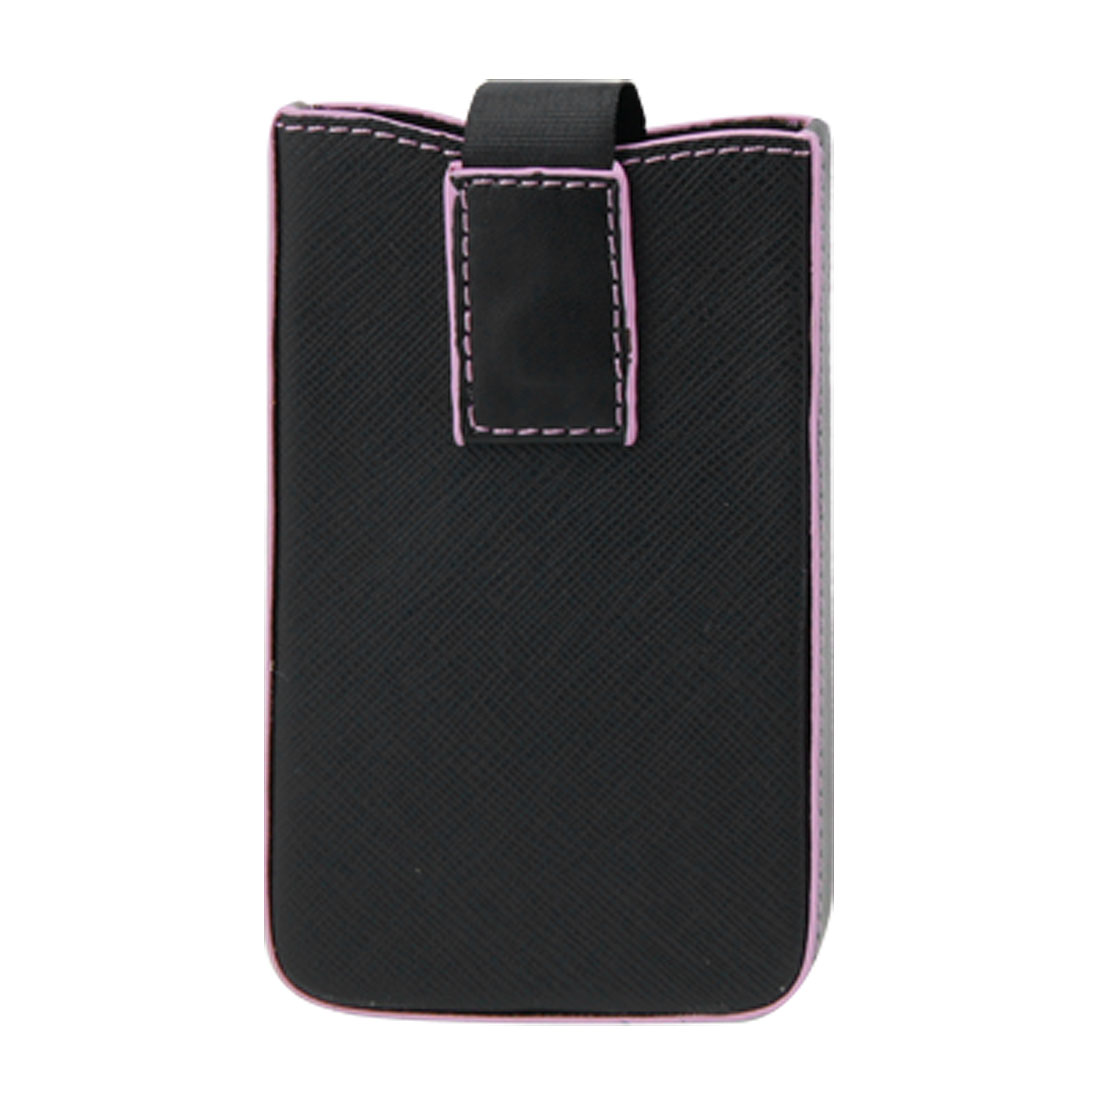 Black Faux Leather Case Pink Edge Pull Up Pouch Bag for iPhone 3G